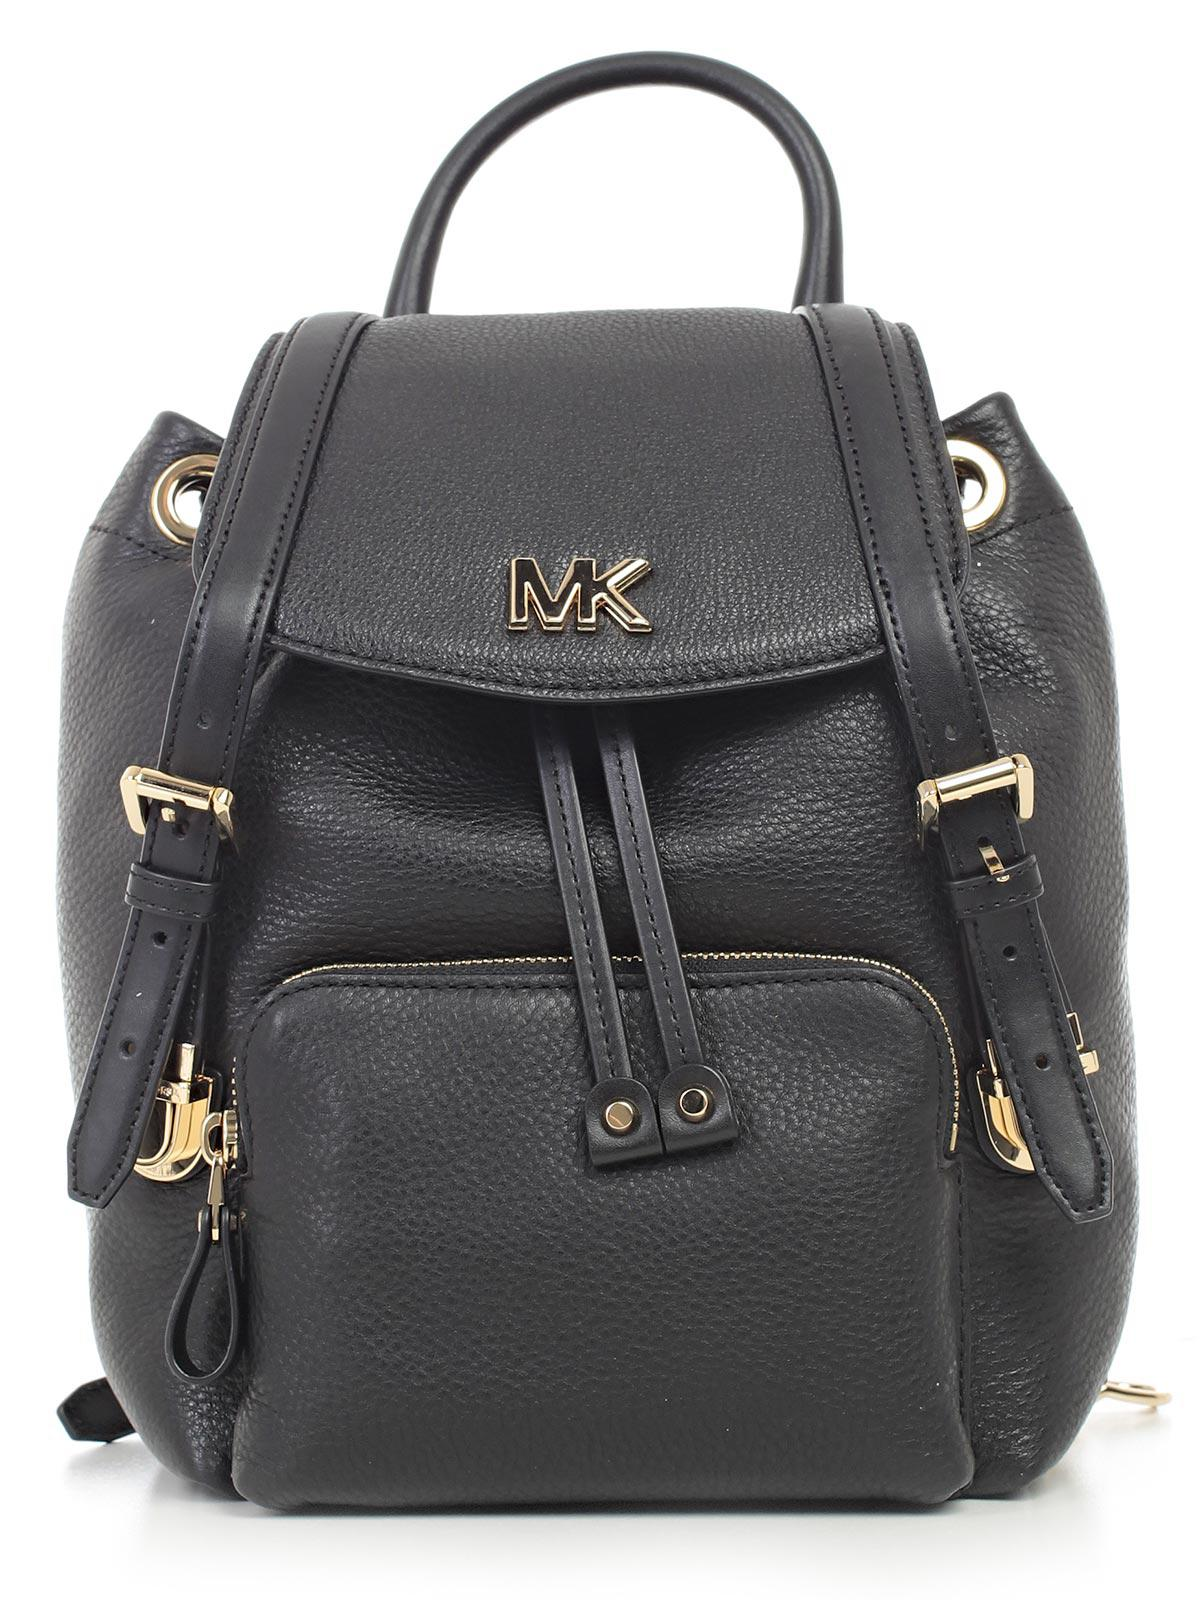 Mott Medium Backpack in Black Small Pebble Leather Michael Michael Kors 6Om3Xu